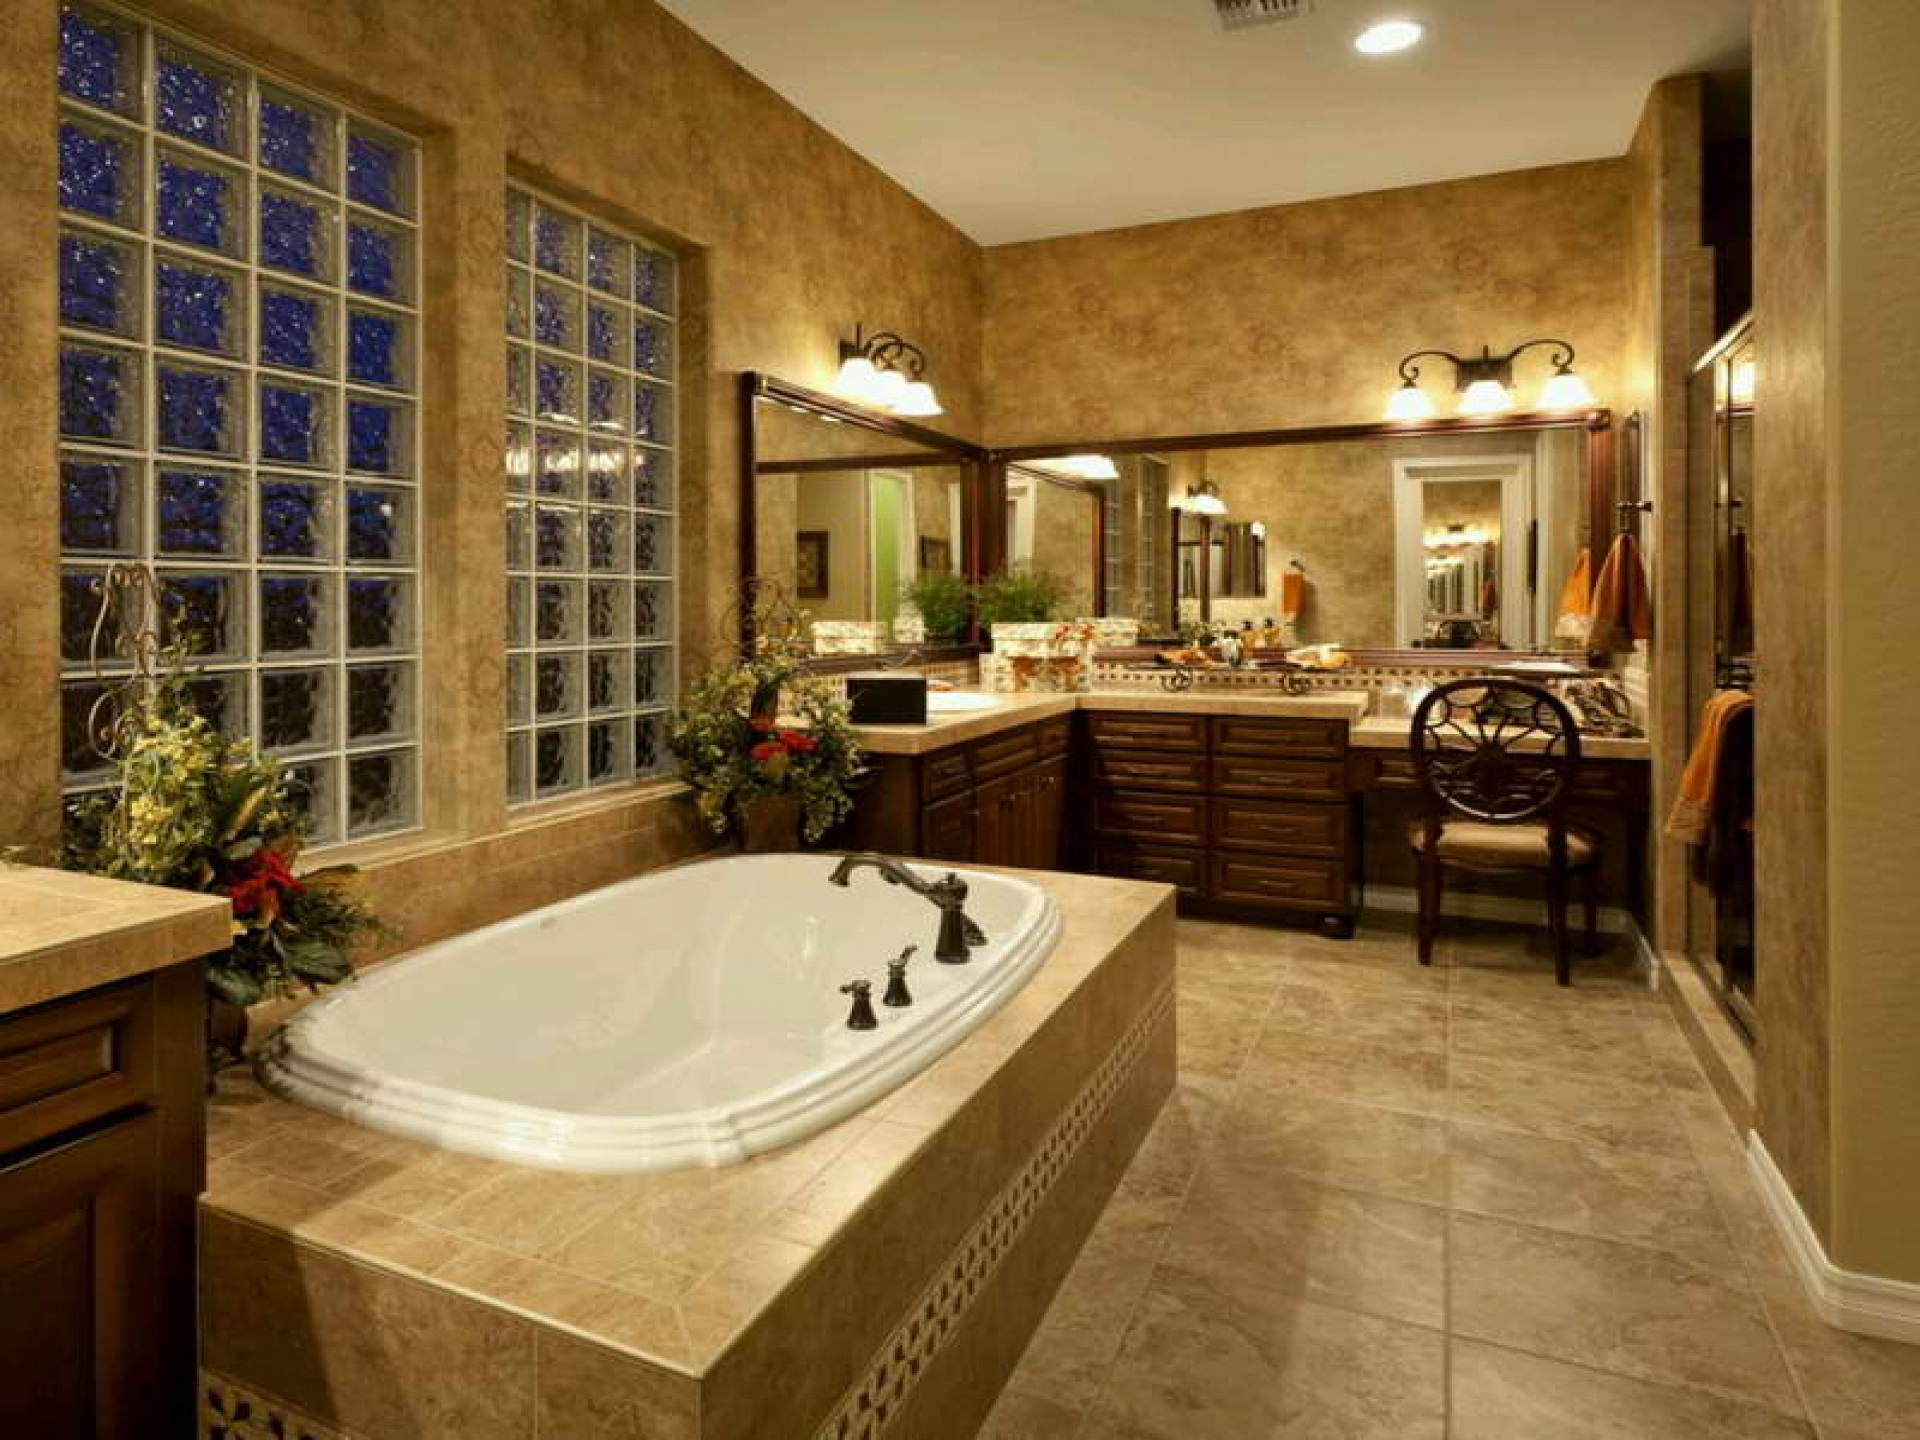 amazing-race-bathroom-break-beautiful-bathrooms-uncategorized-picture-amazing-bathrooms